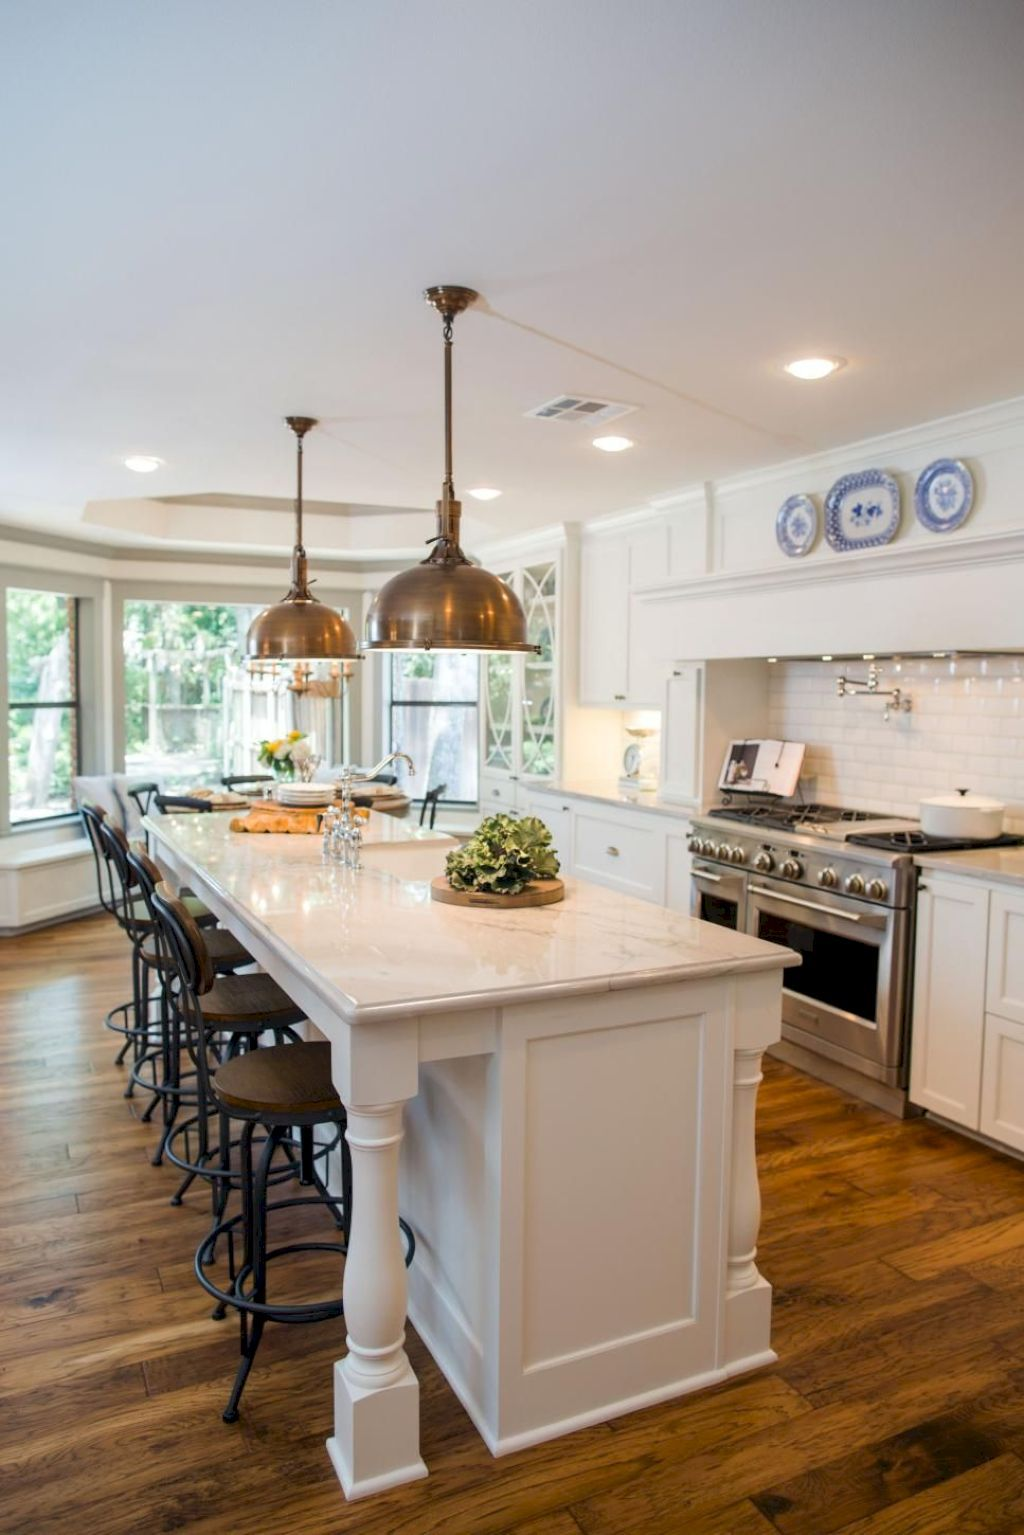 45 Best Kitchen Island Decor And Design Ideas  Kitchen Island Custom Small Kitchen Island Design Ideas Inspiration Design